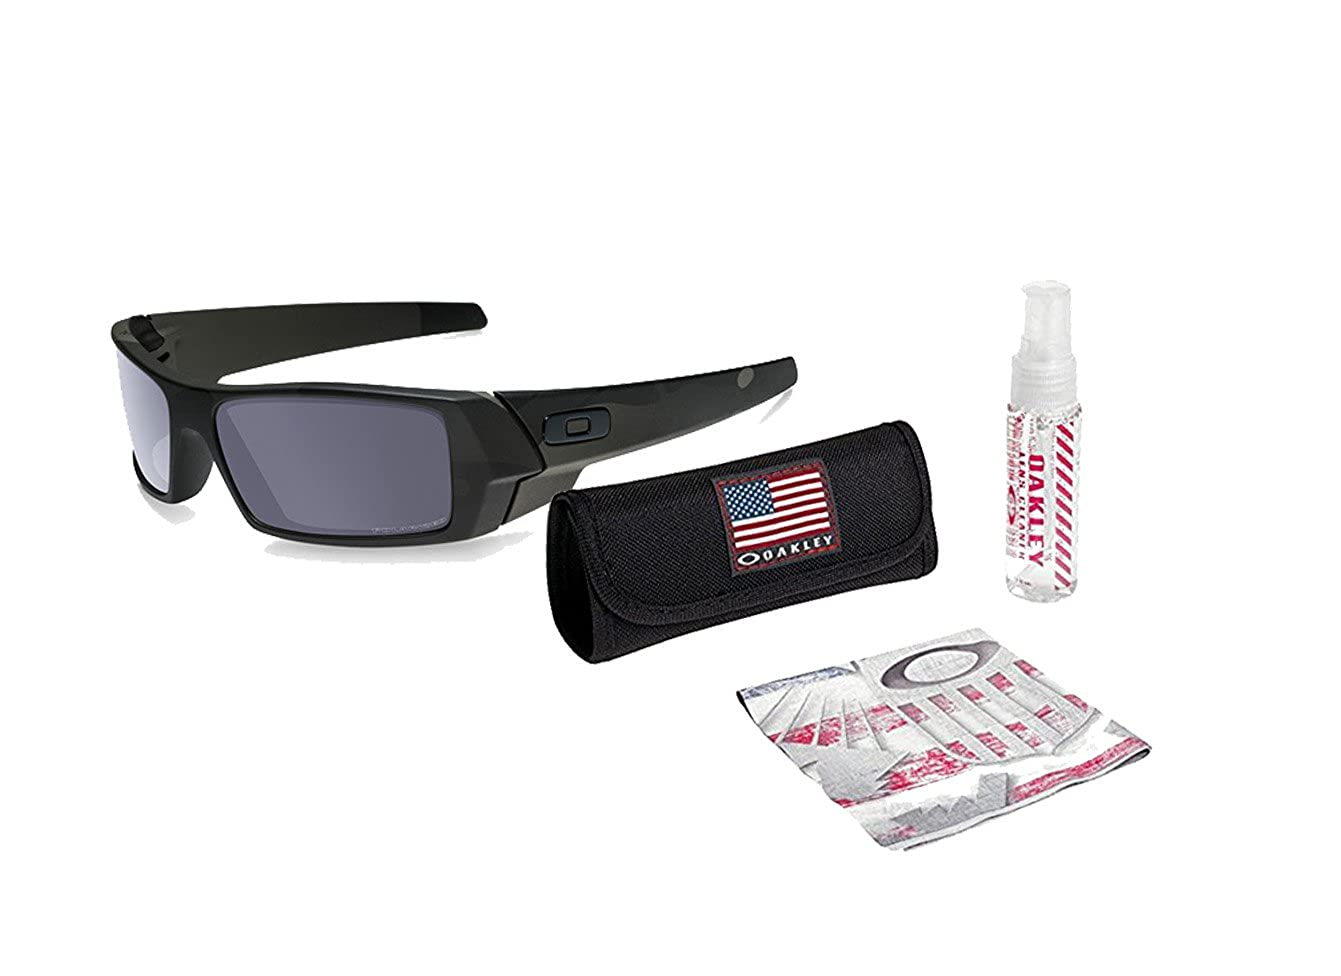 Amazon.com: Oakley Gascan Sunglasses (Multicam Black Frame/Gray Lens) with  USA Flag Lens Cleaning Kit: Clothing